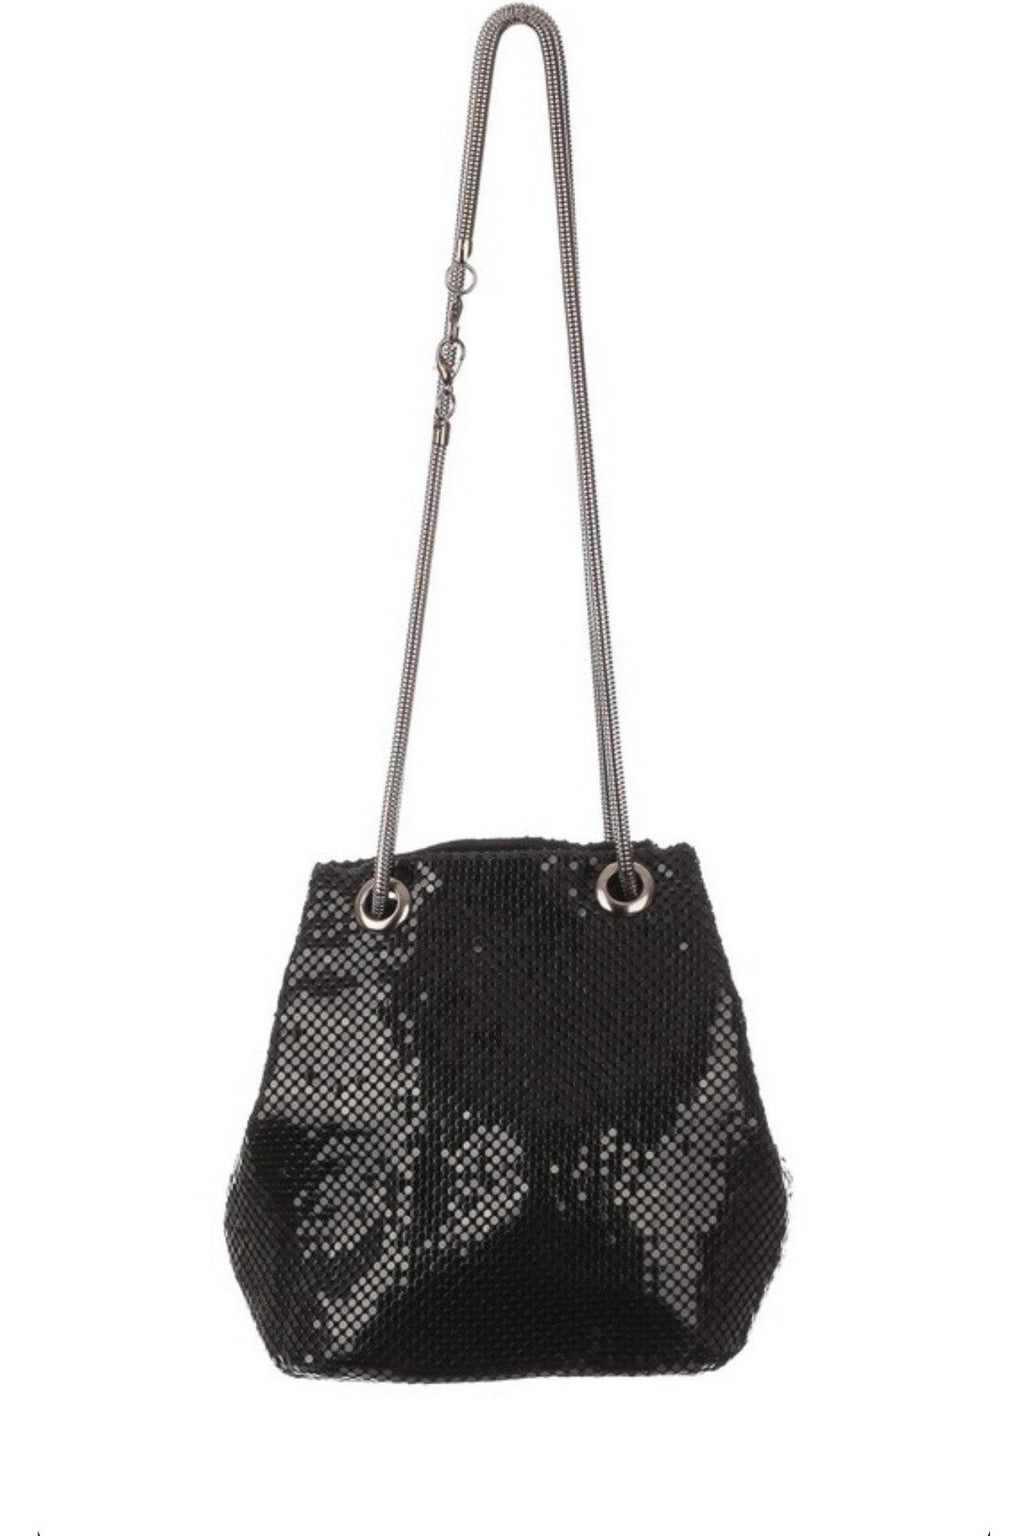 Lights Out Bucket Bag - Indigo Closet